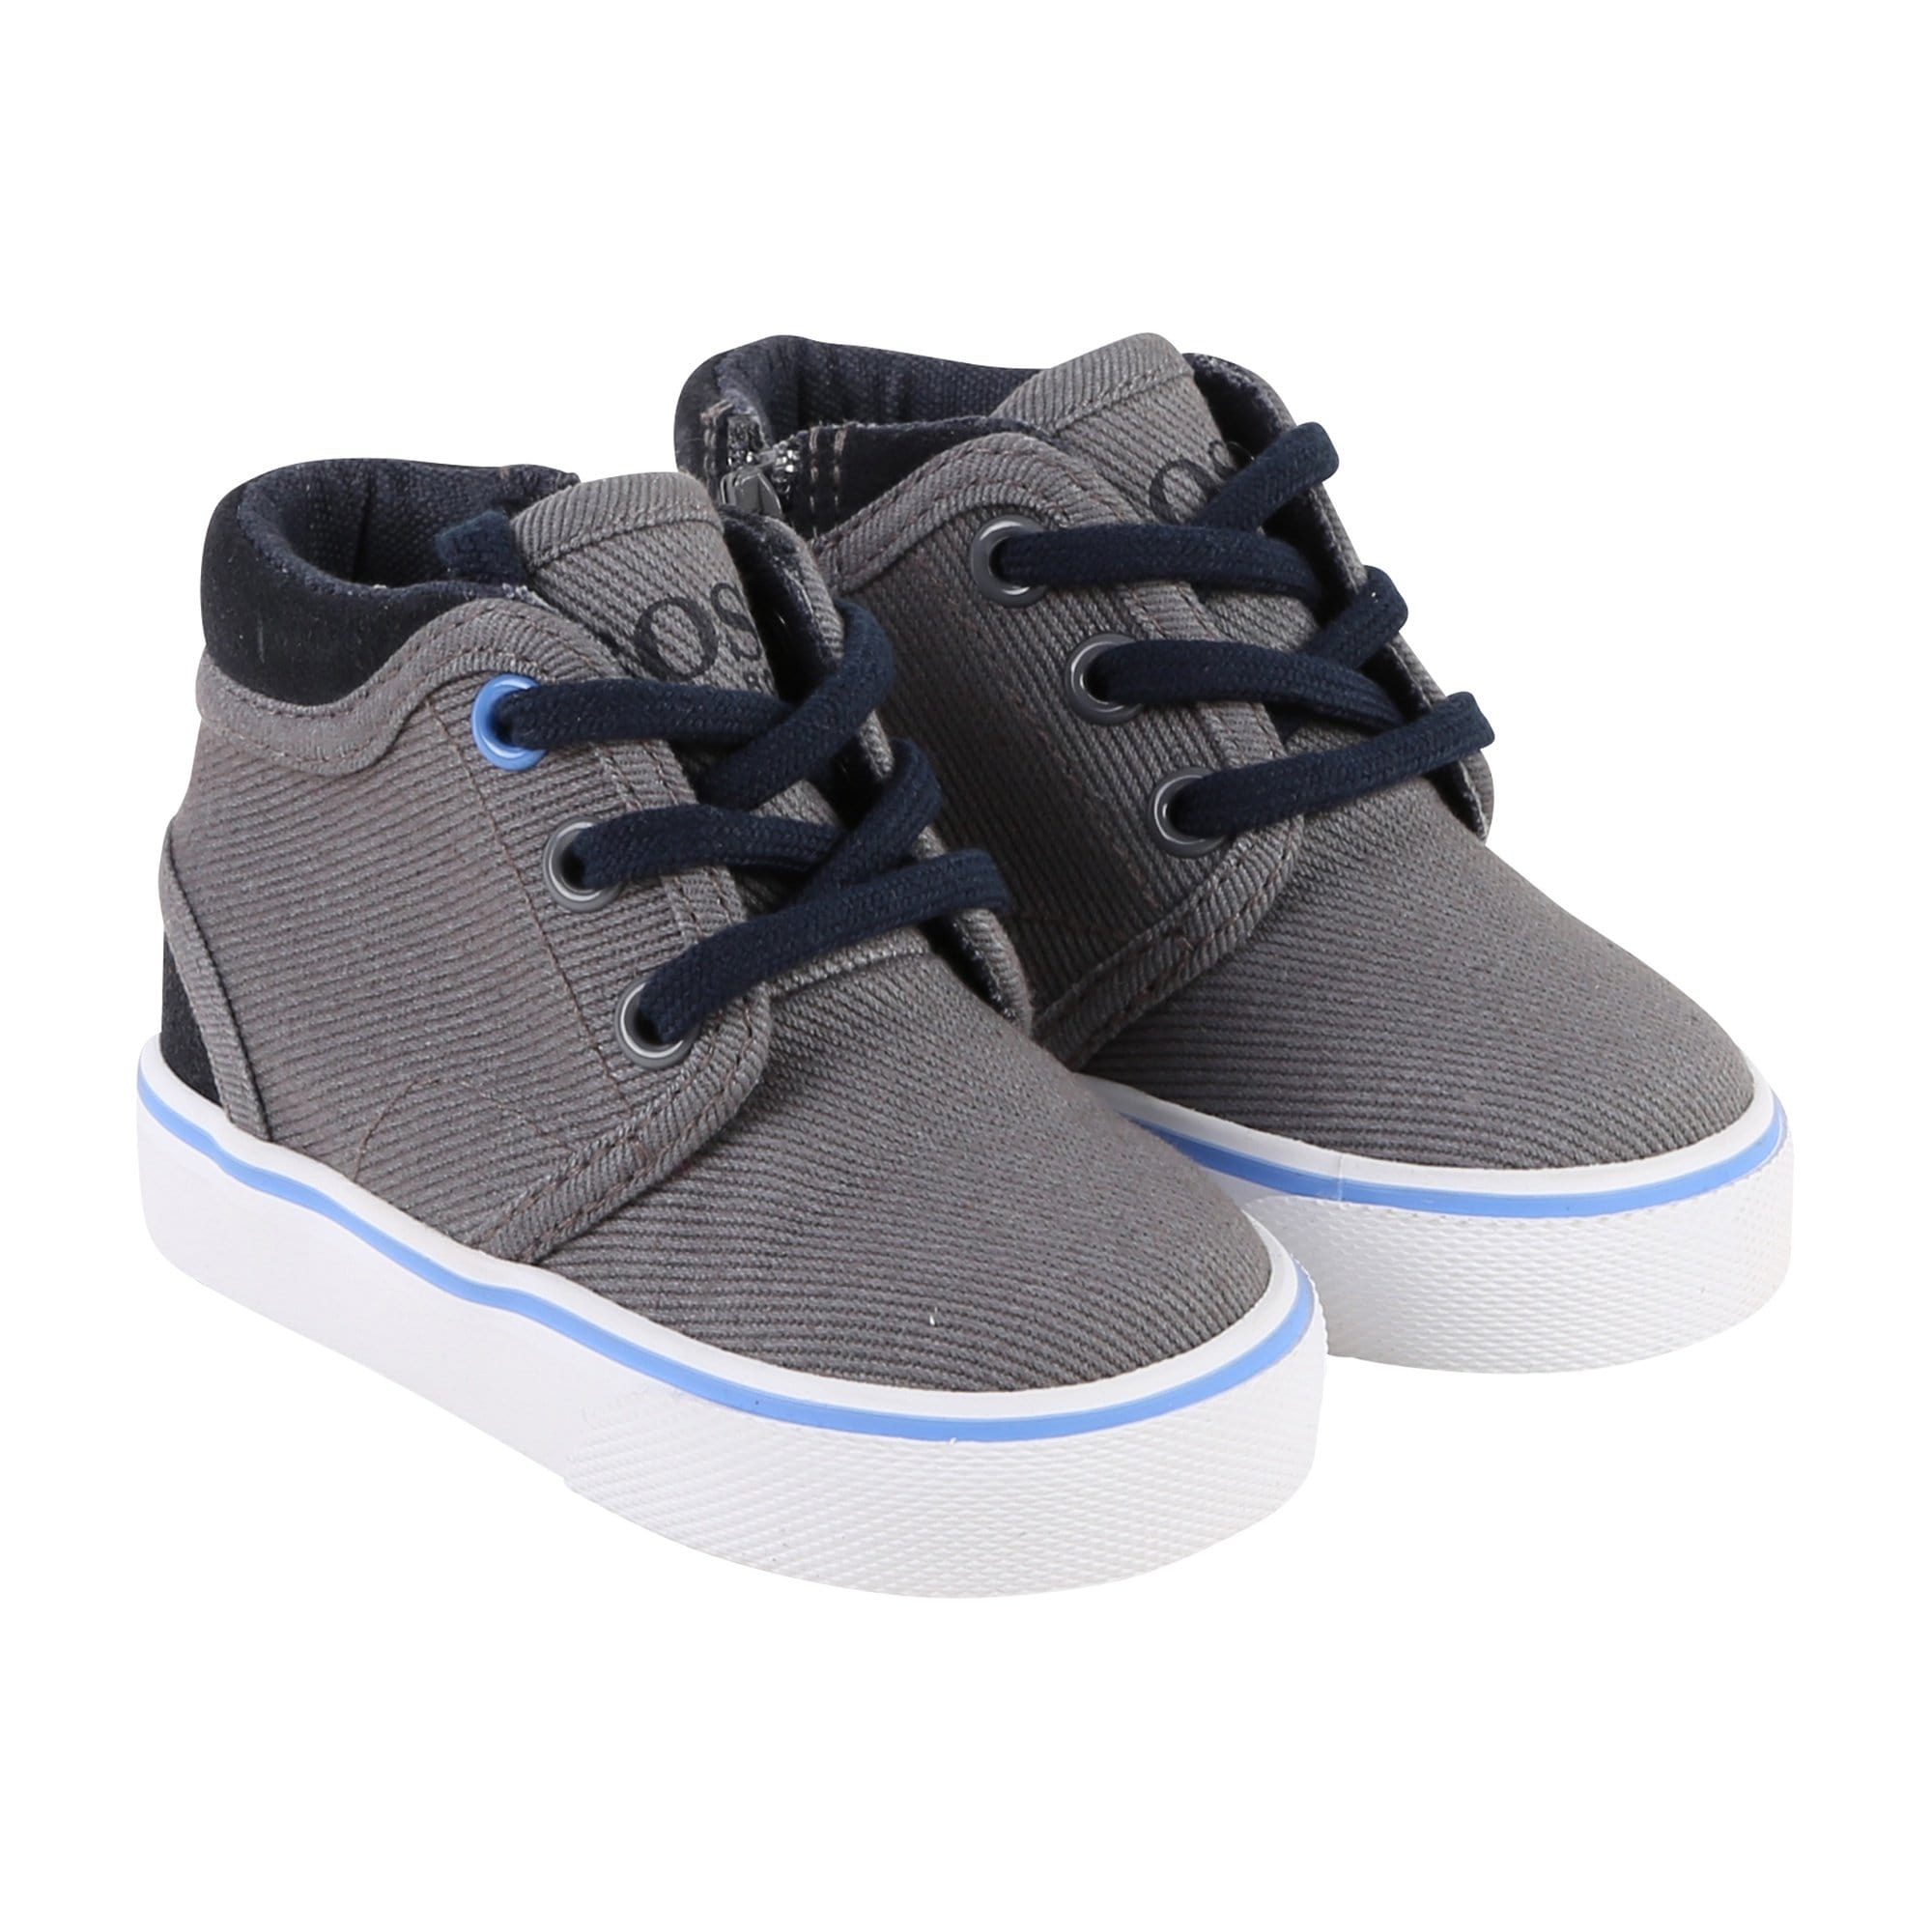 Hugo Boss Titanium High Tops Younger Boys J09096